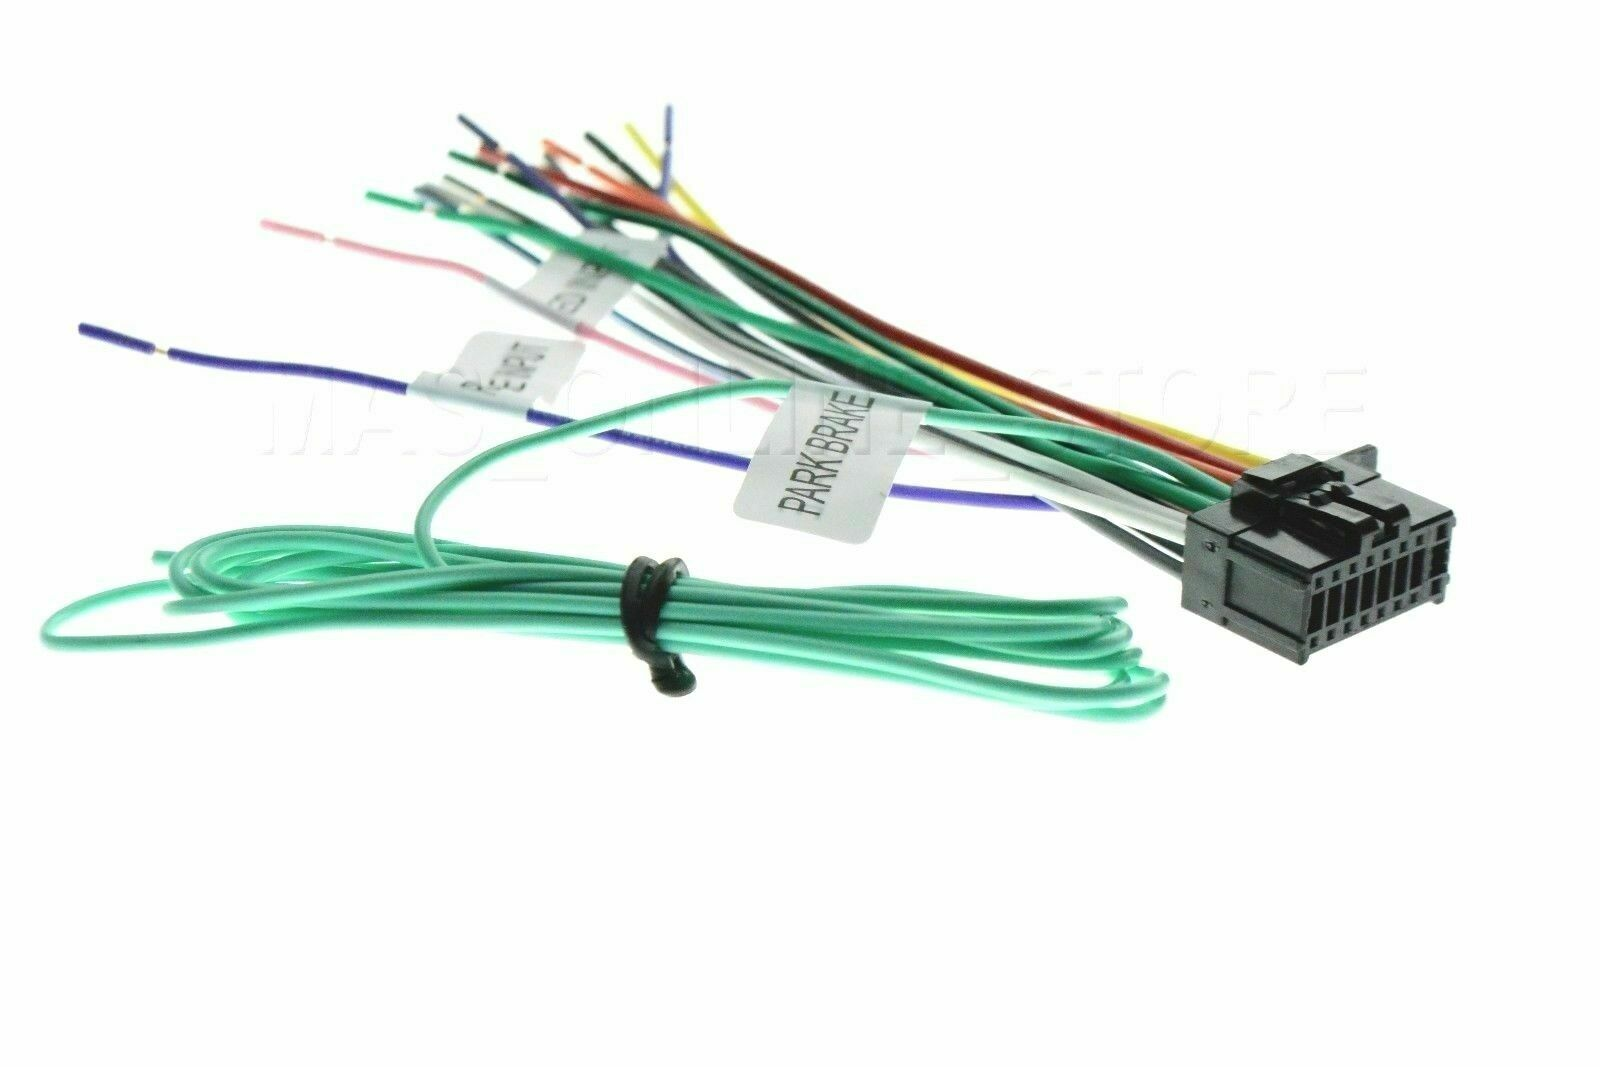 Pioneer Avh X Bhs Wiring Harness on stereo amp wiring, subwoofer wiring, kenwood stereo wiring, dvd player wiring,